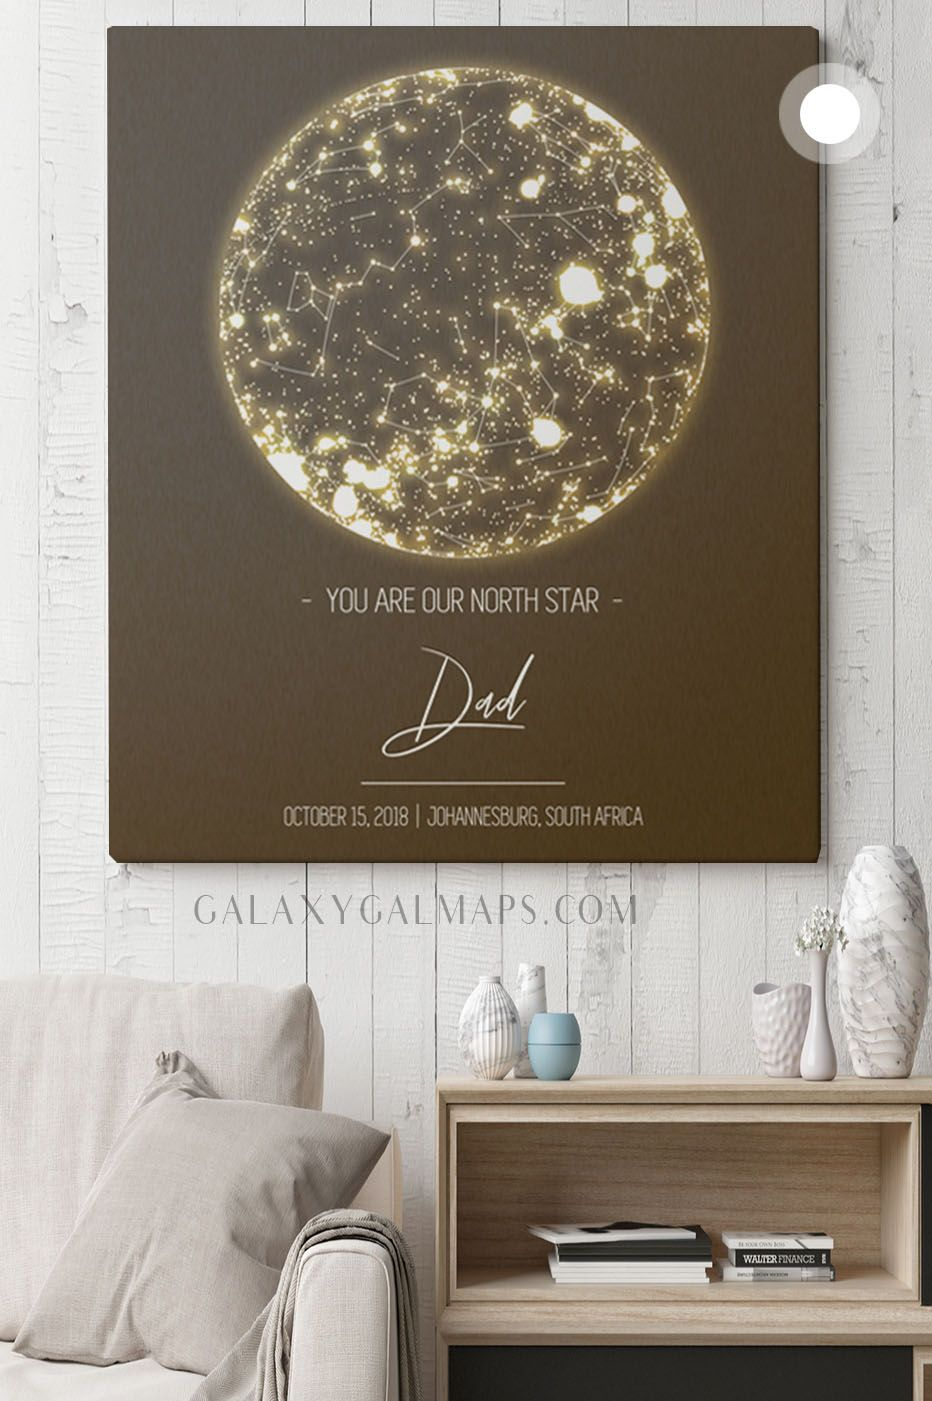 Create Your Custom Night Sky Map Our First Home Young Woman Mum Gift Christmas Massachusetts Map Hats Caps Metal Gifts For Mum Star Map Gifts For Mom